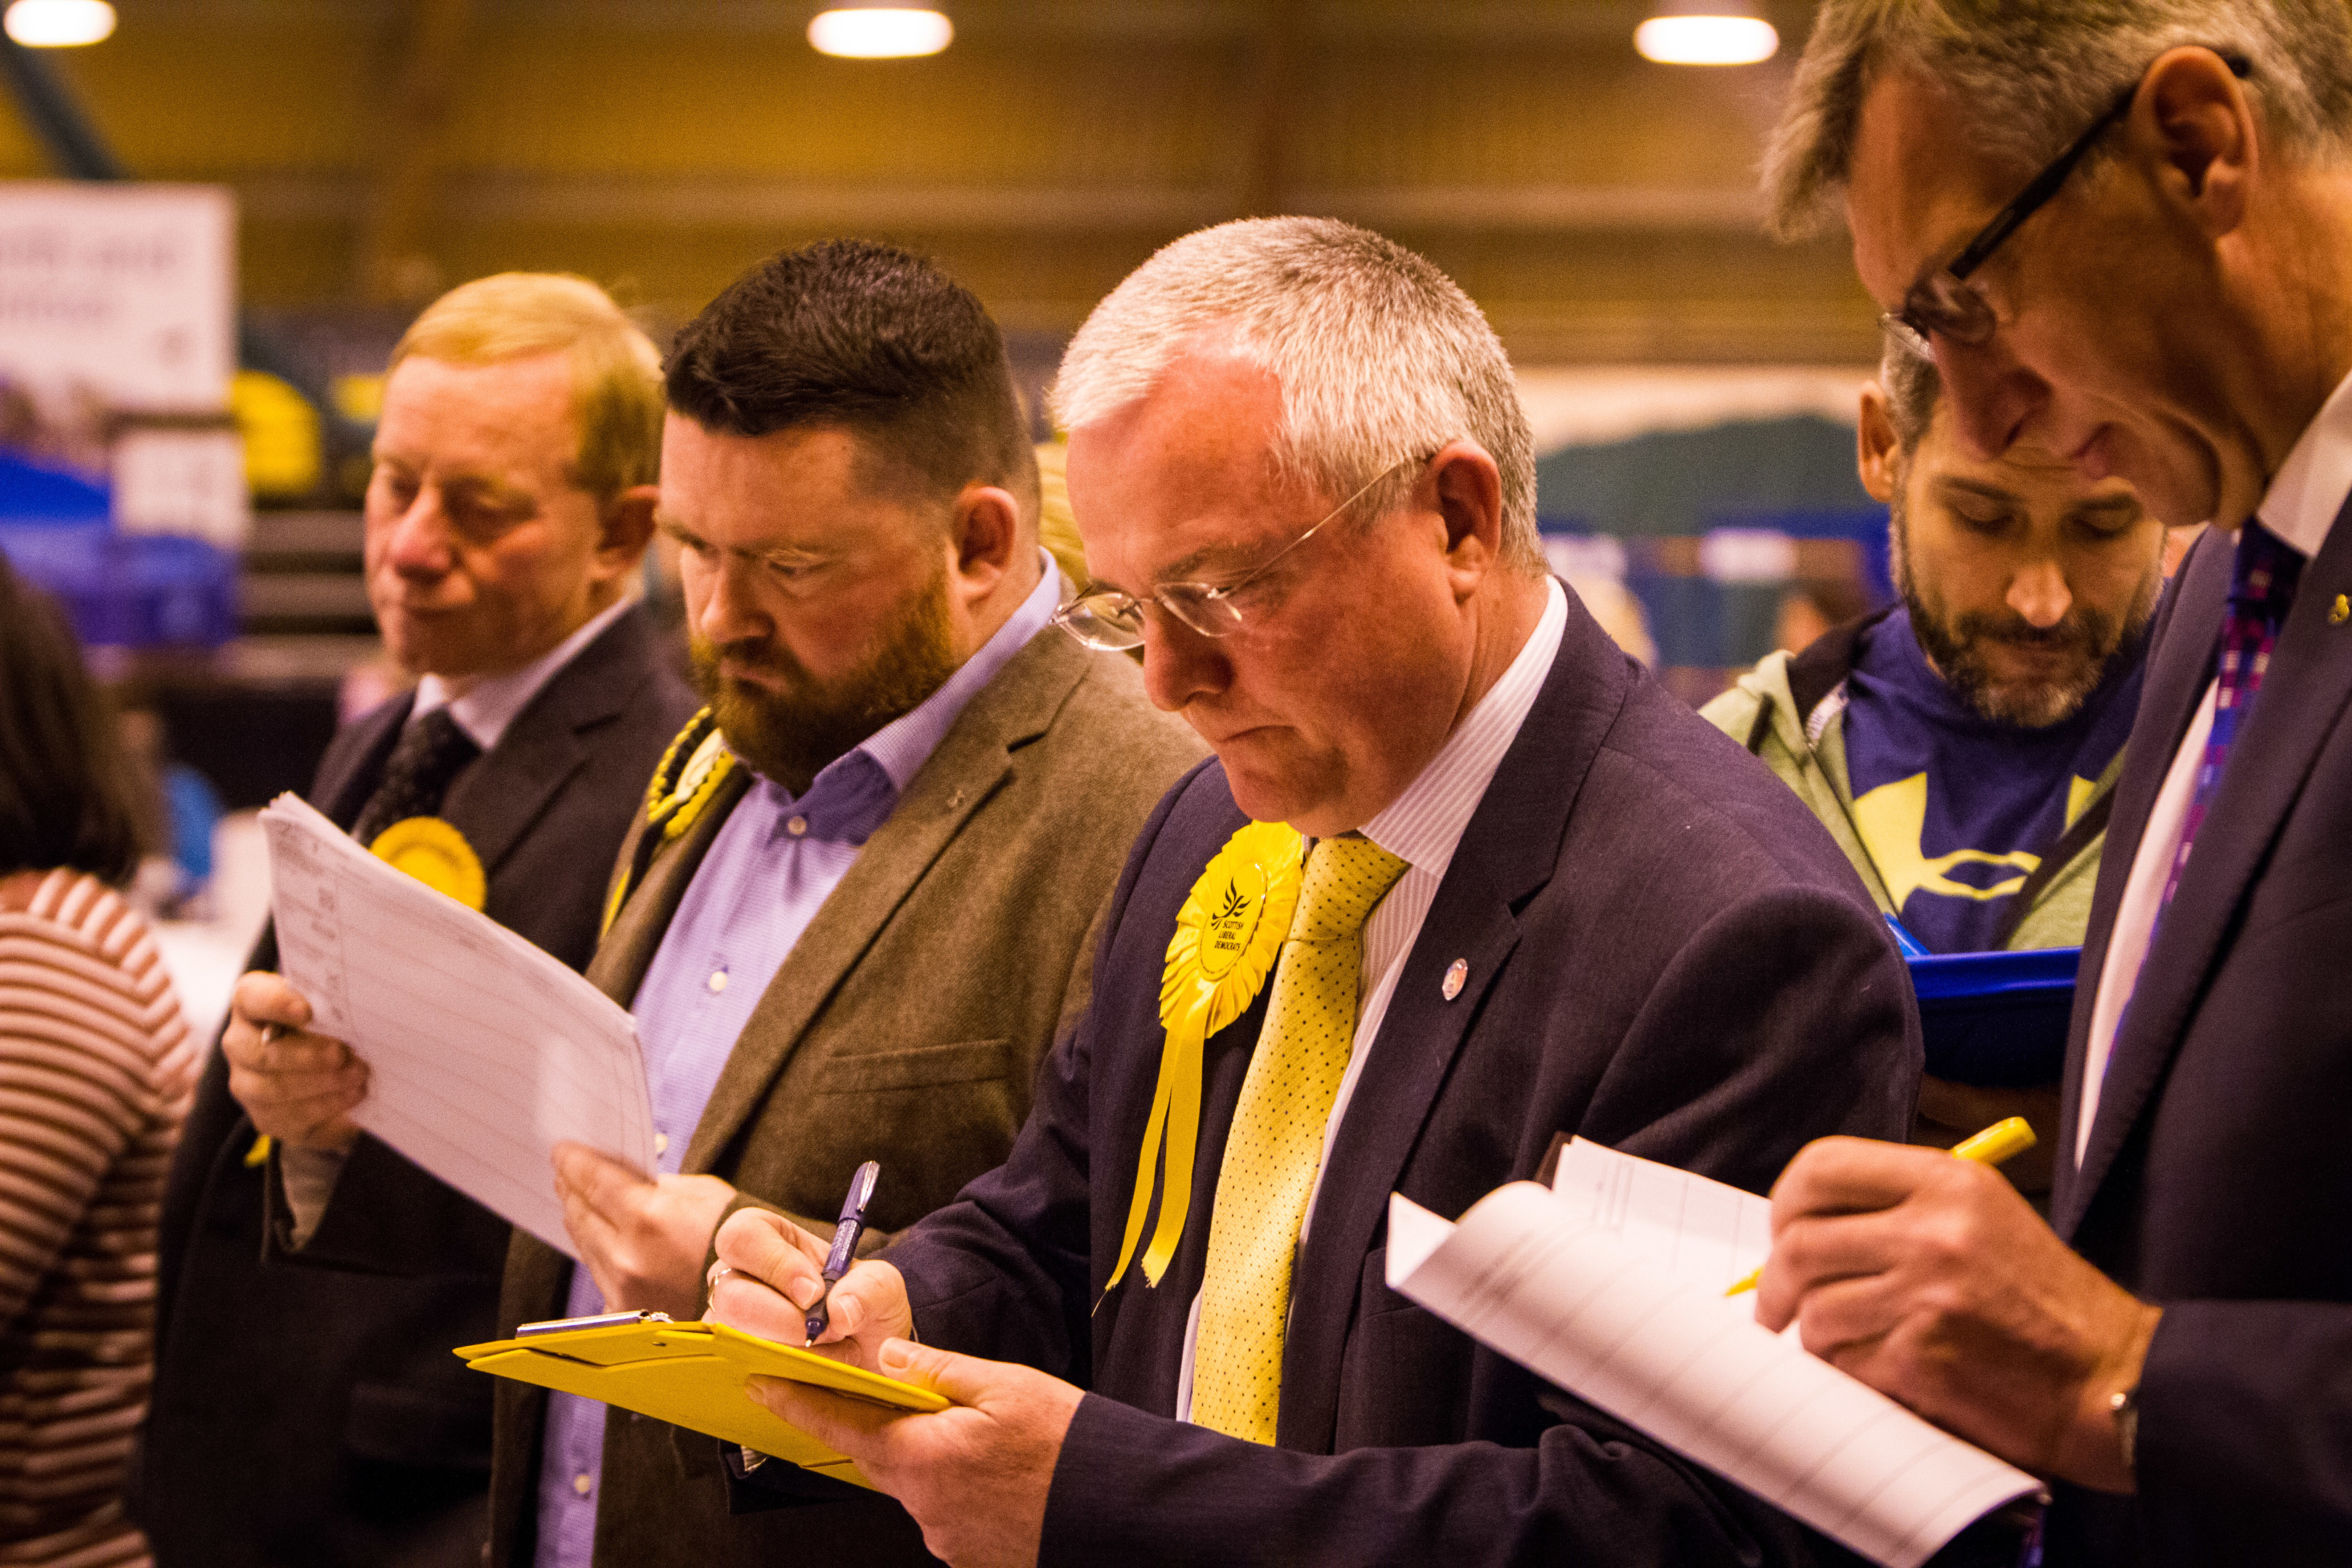 The count in full flow. Peter Barrett and others keeping a close eye on events.